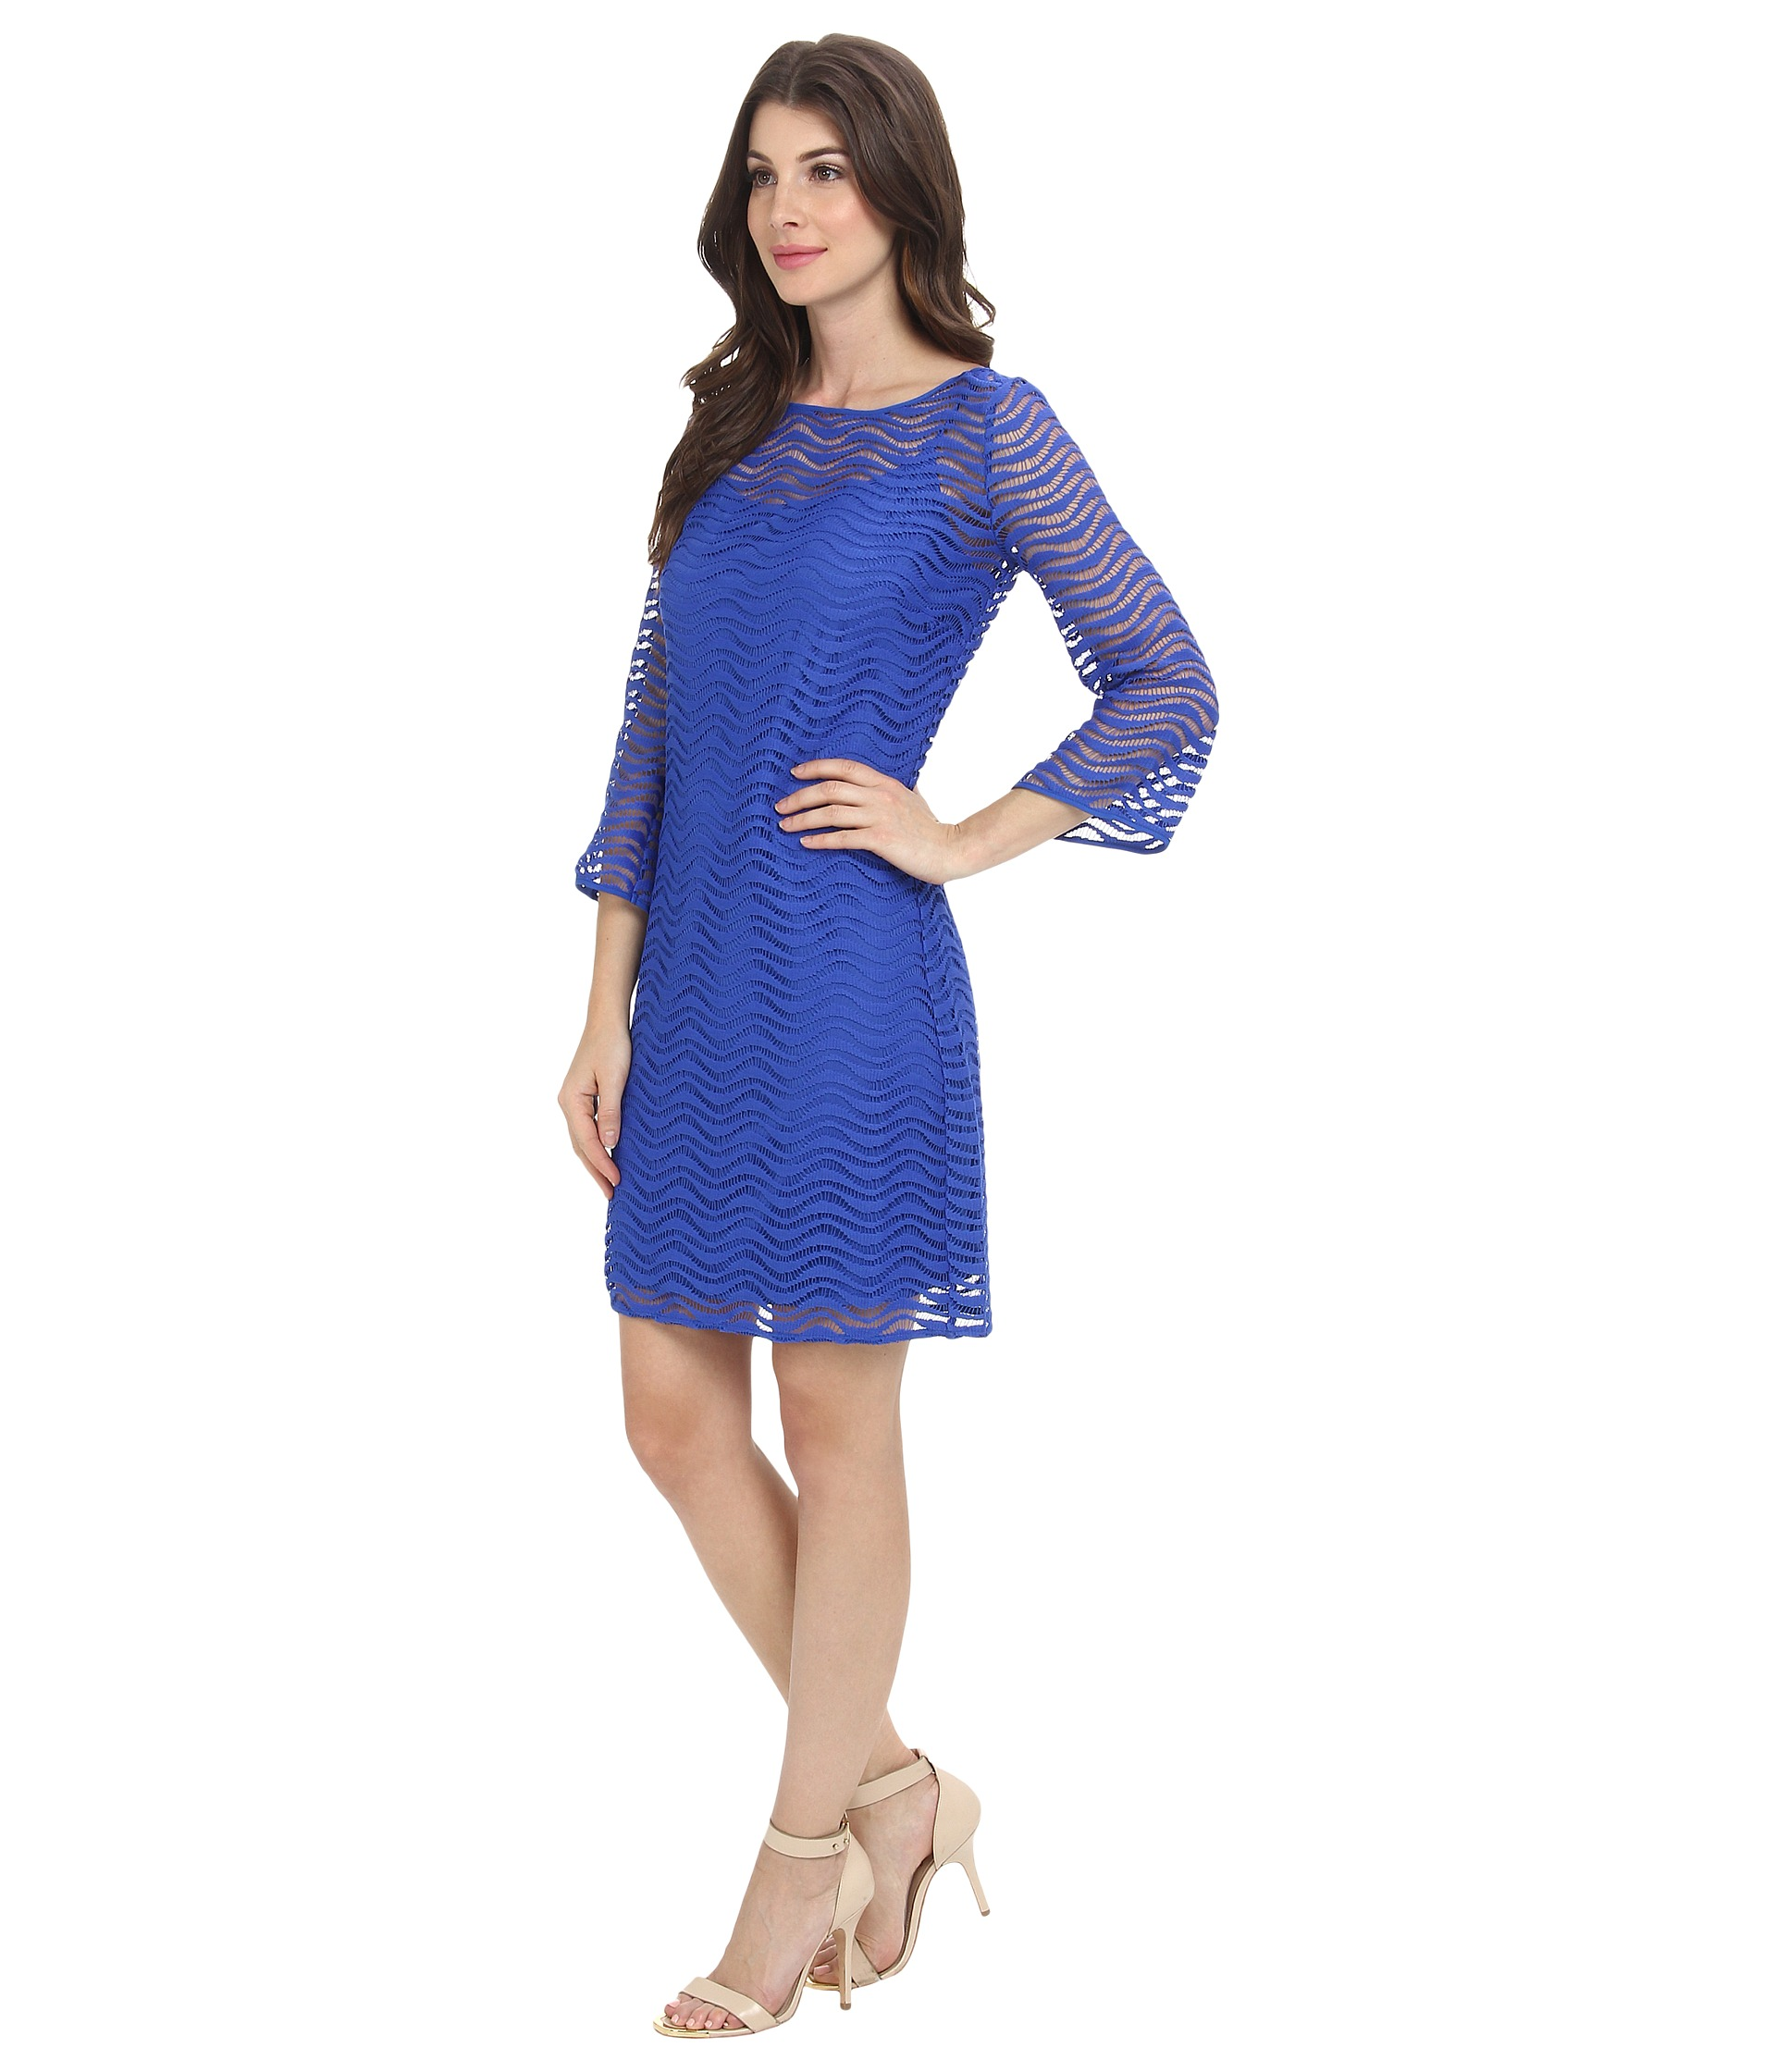 Lilly Pulitzer Dresses On Sale Clearance Lilly Pulitzer Topanga Lace